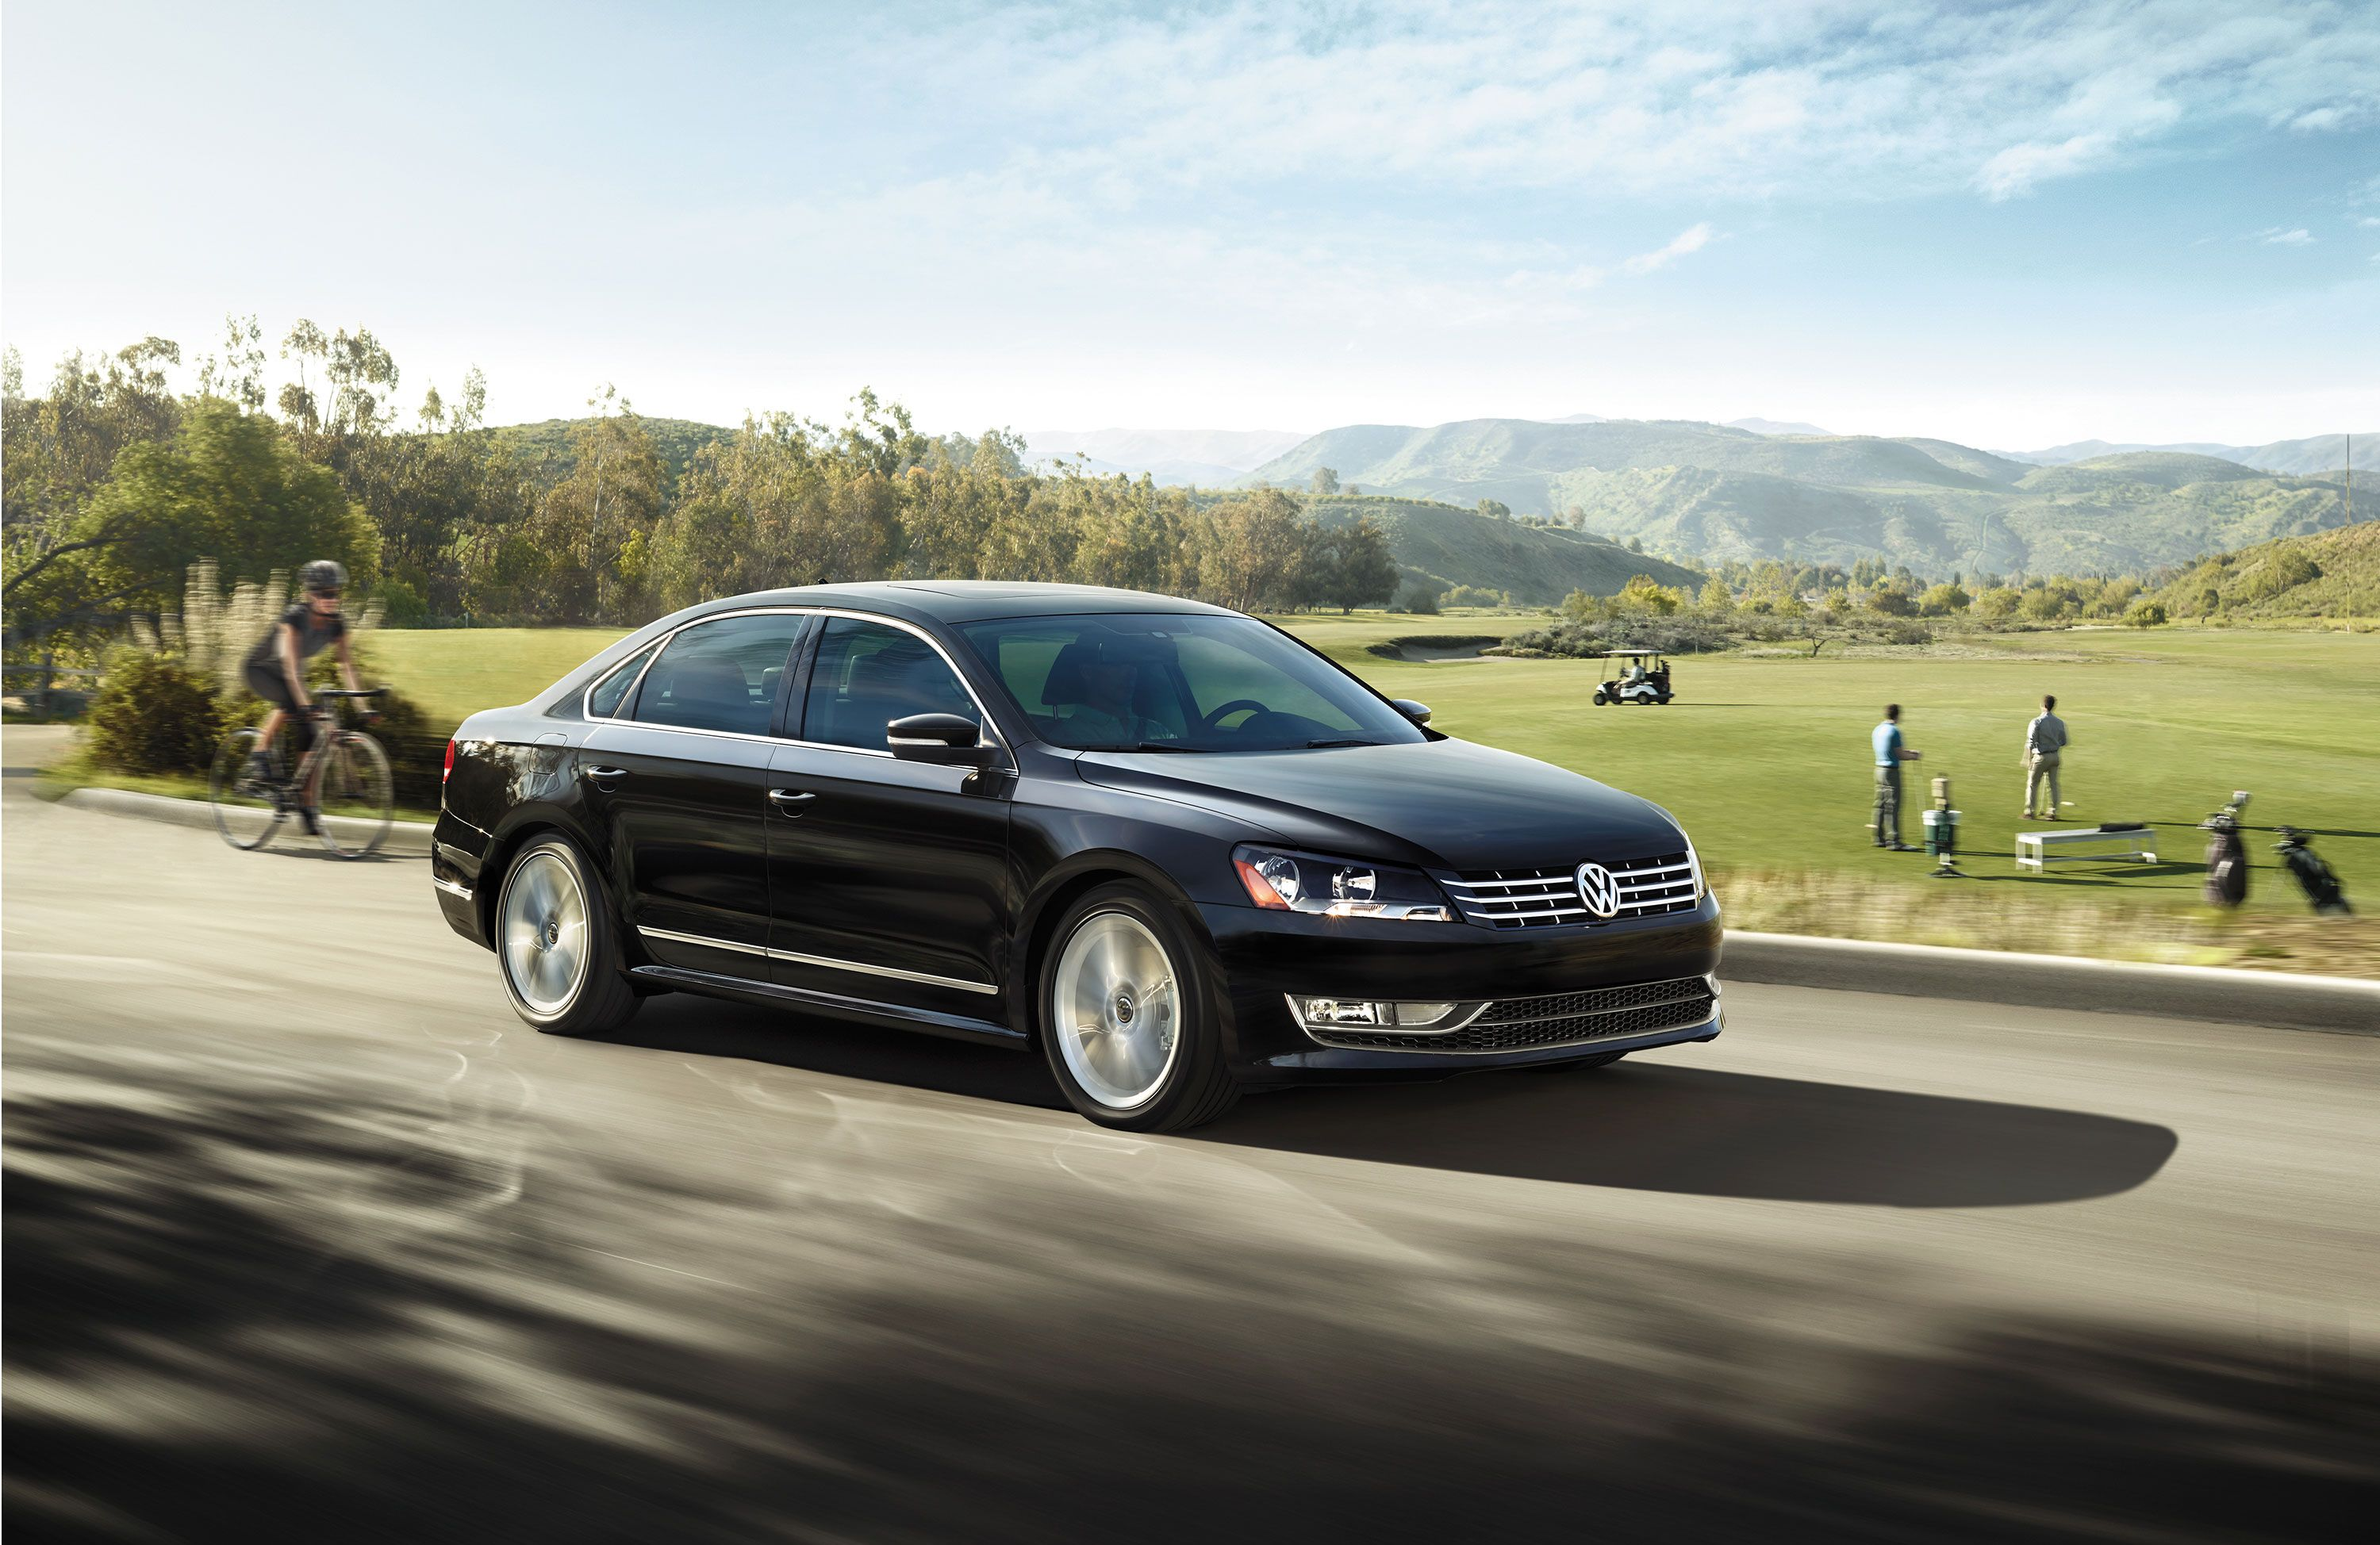 Built For The Family That S Going Places The 2015 Volkswagen Passat Turbocharged Engine Black 4 Door Sedan Touchsc Volkswagen Volkswagen Passat Vw Passat